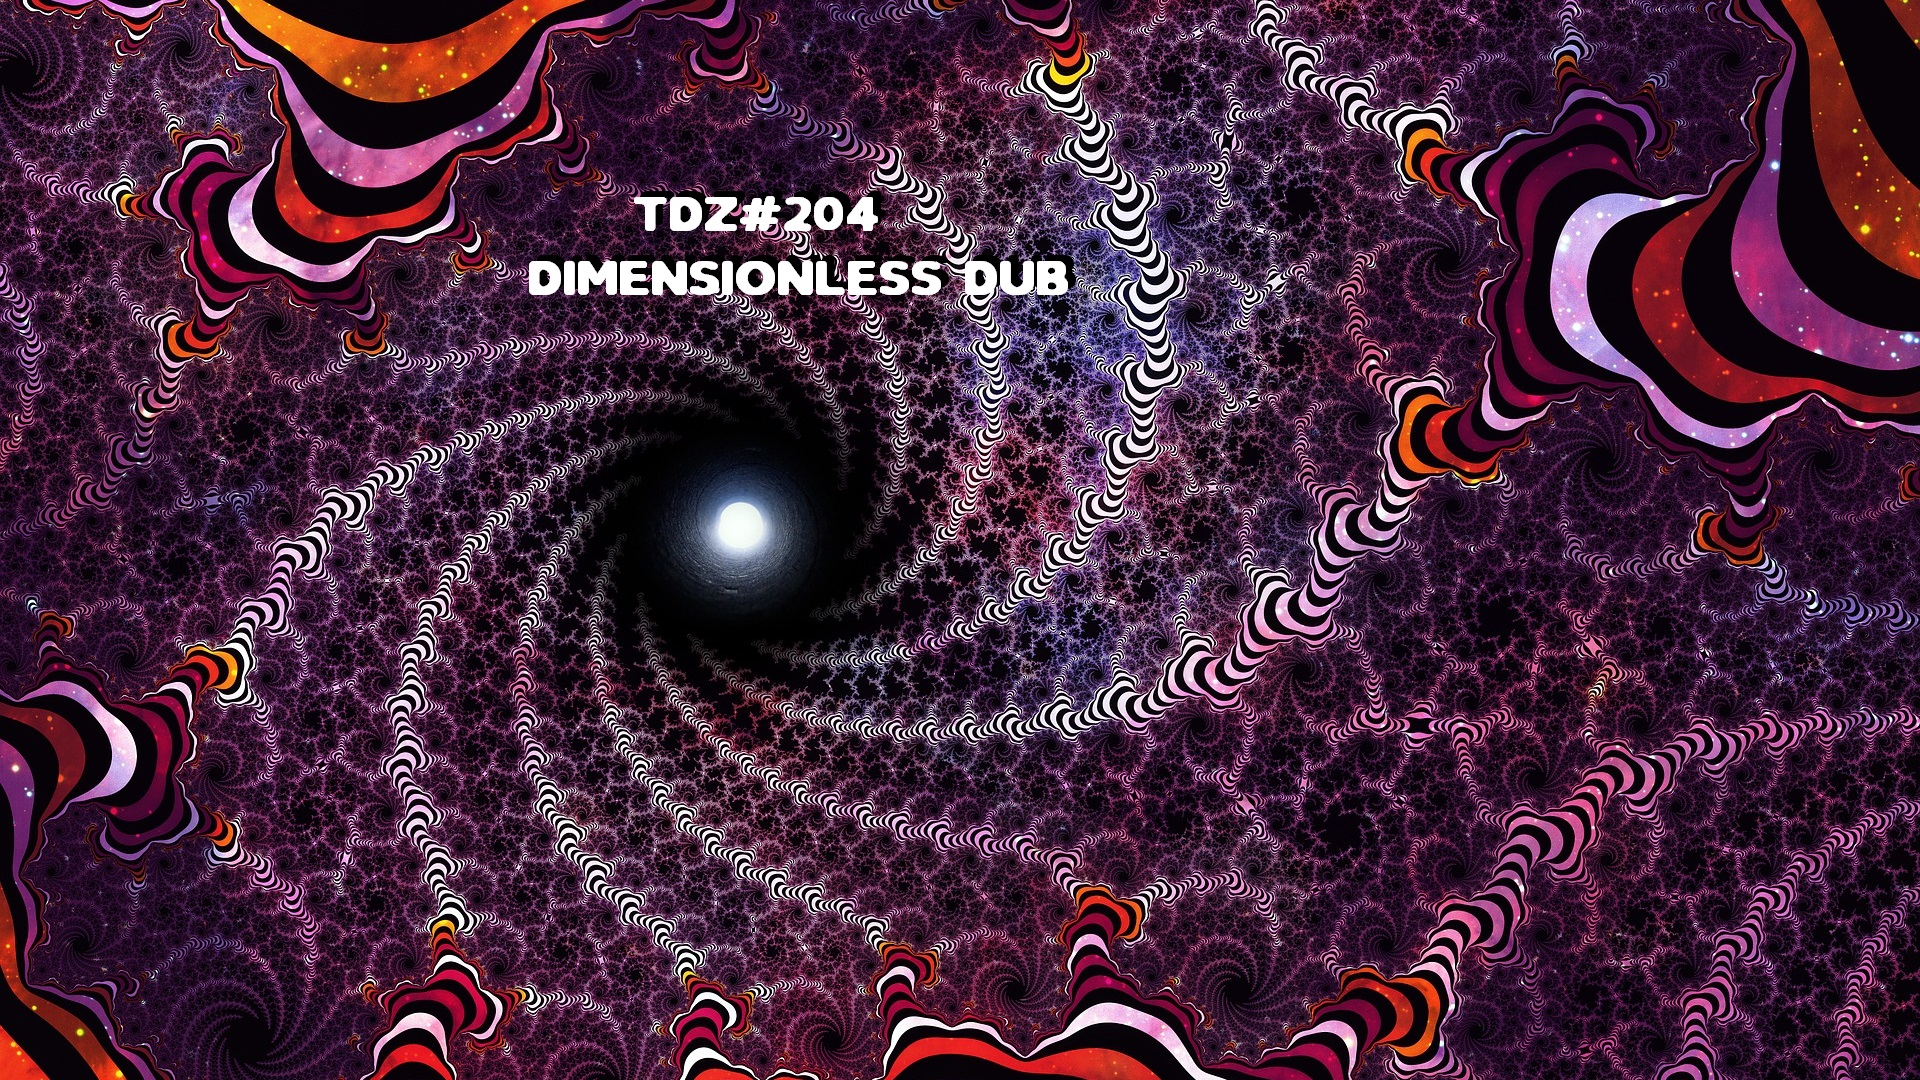 TDZ#204... Dimensionless Dub.....